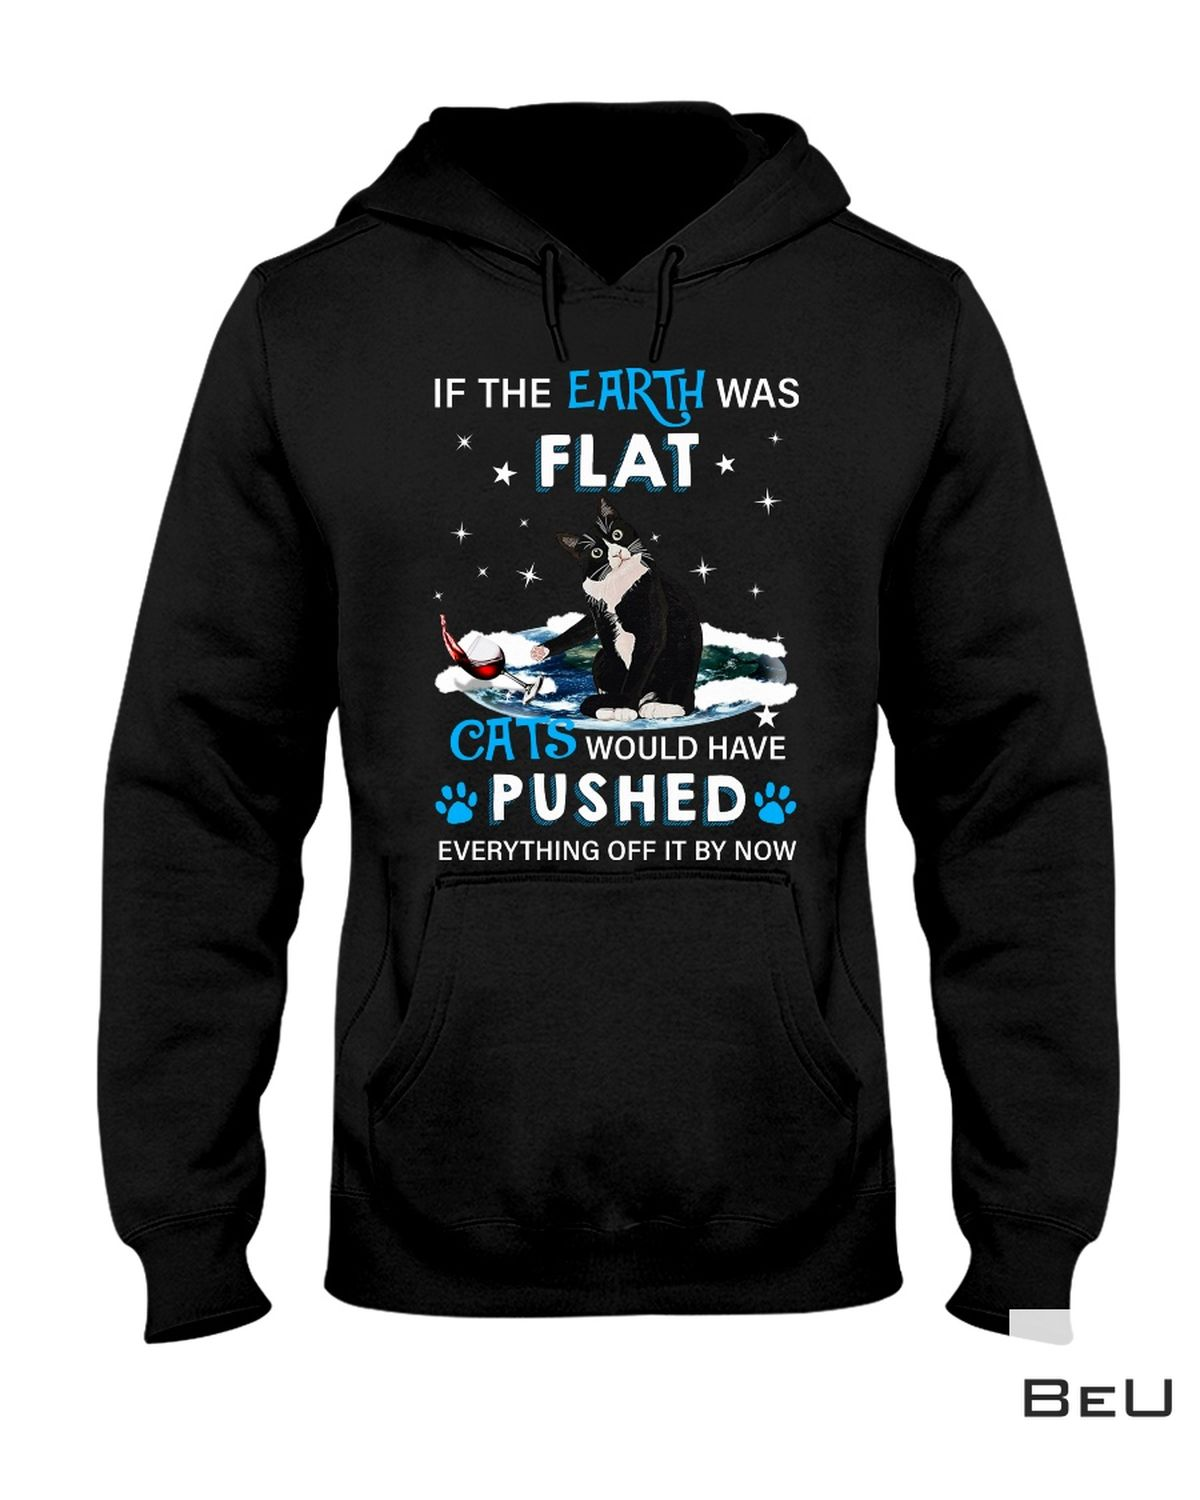 Drop Shipping Cat Would Have Pushed Everything By It Now Shirt